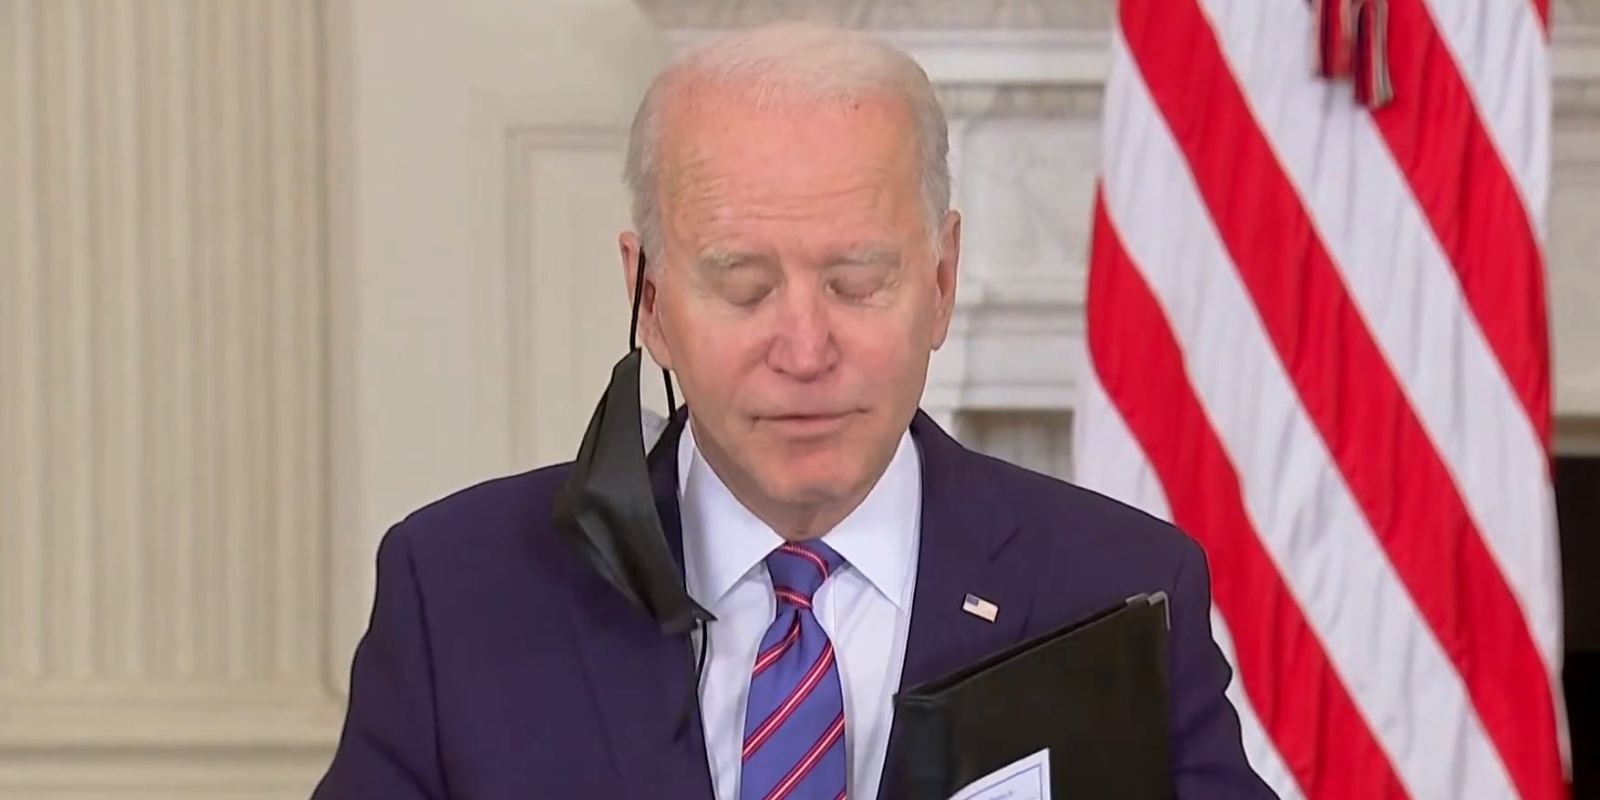 WATCH: President Biden warns that COVID is not over as he touts his 'infrastructure plan'